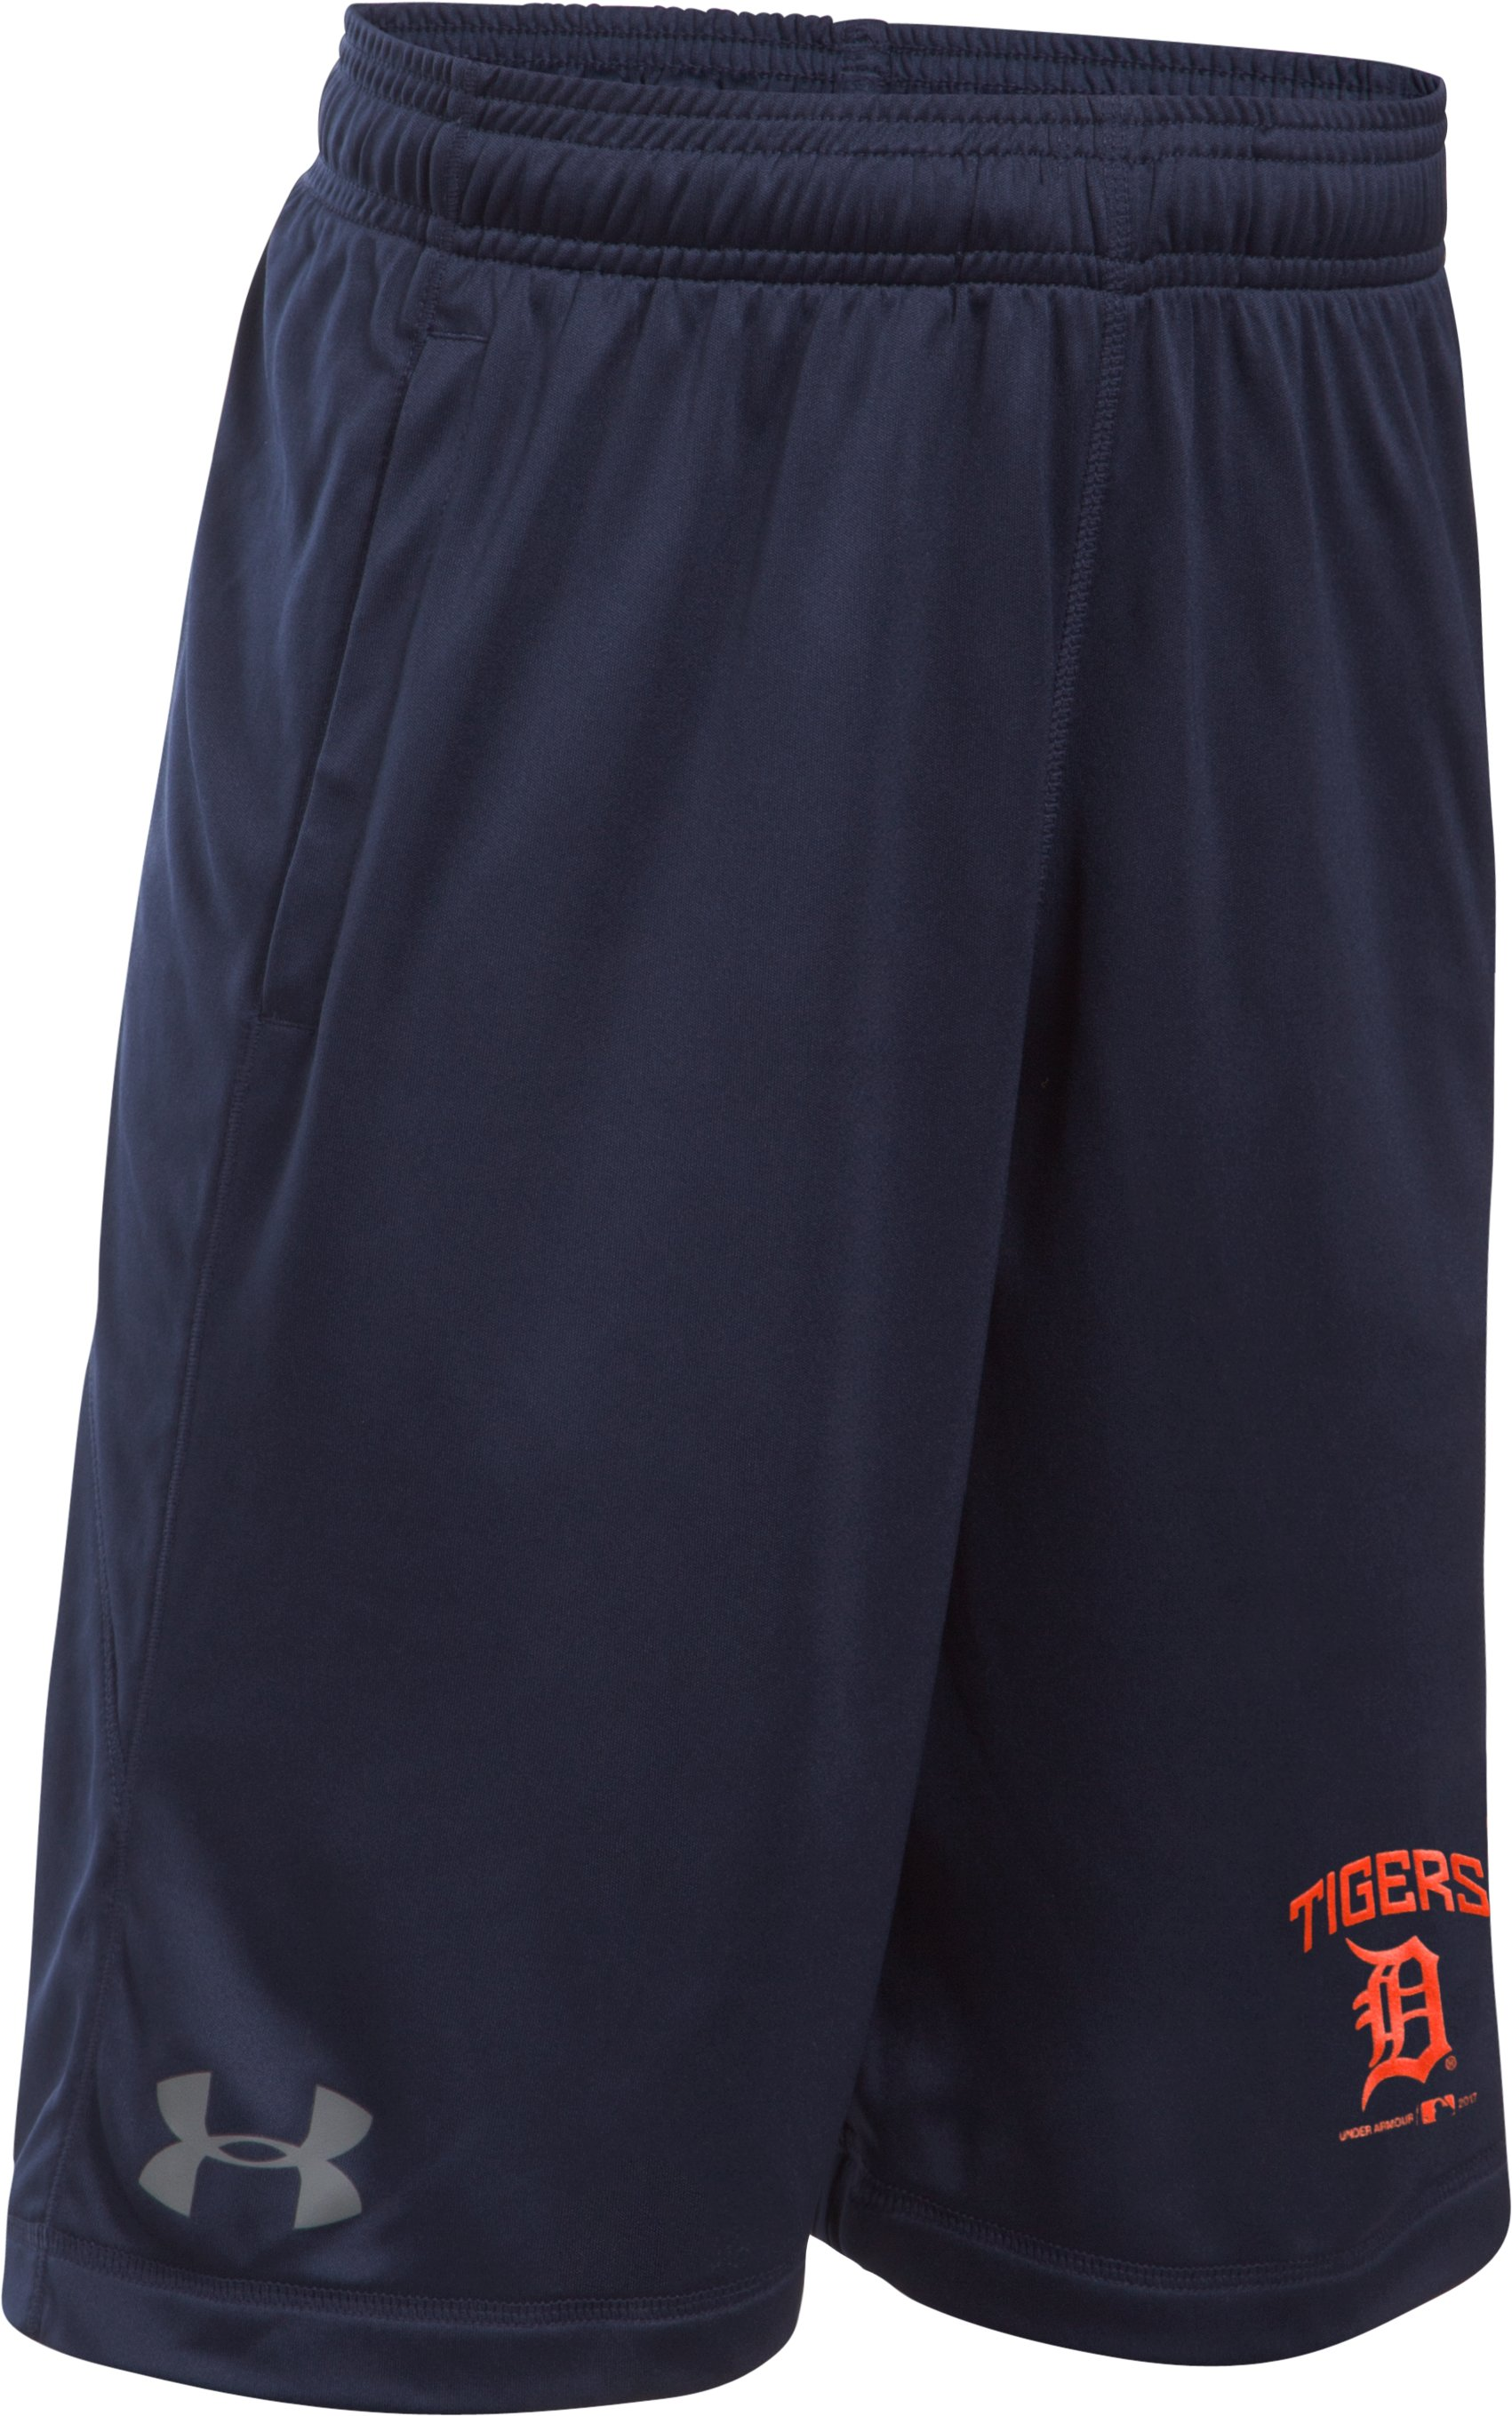 Boys' Detroit Tigers Training Shorts, Midnight Navy,